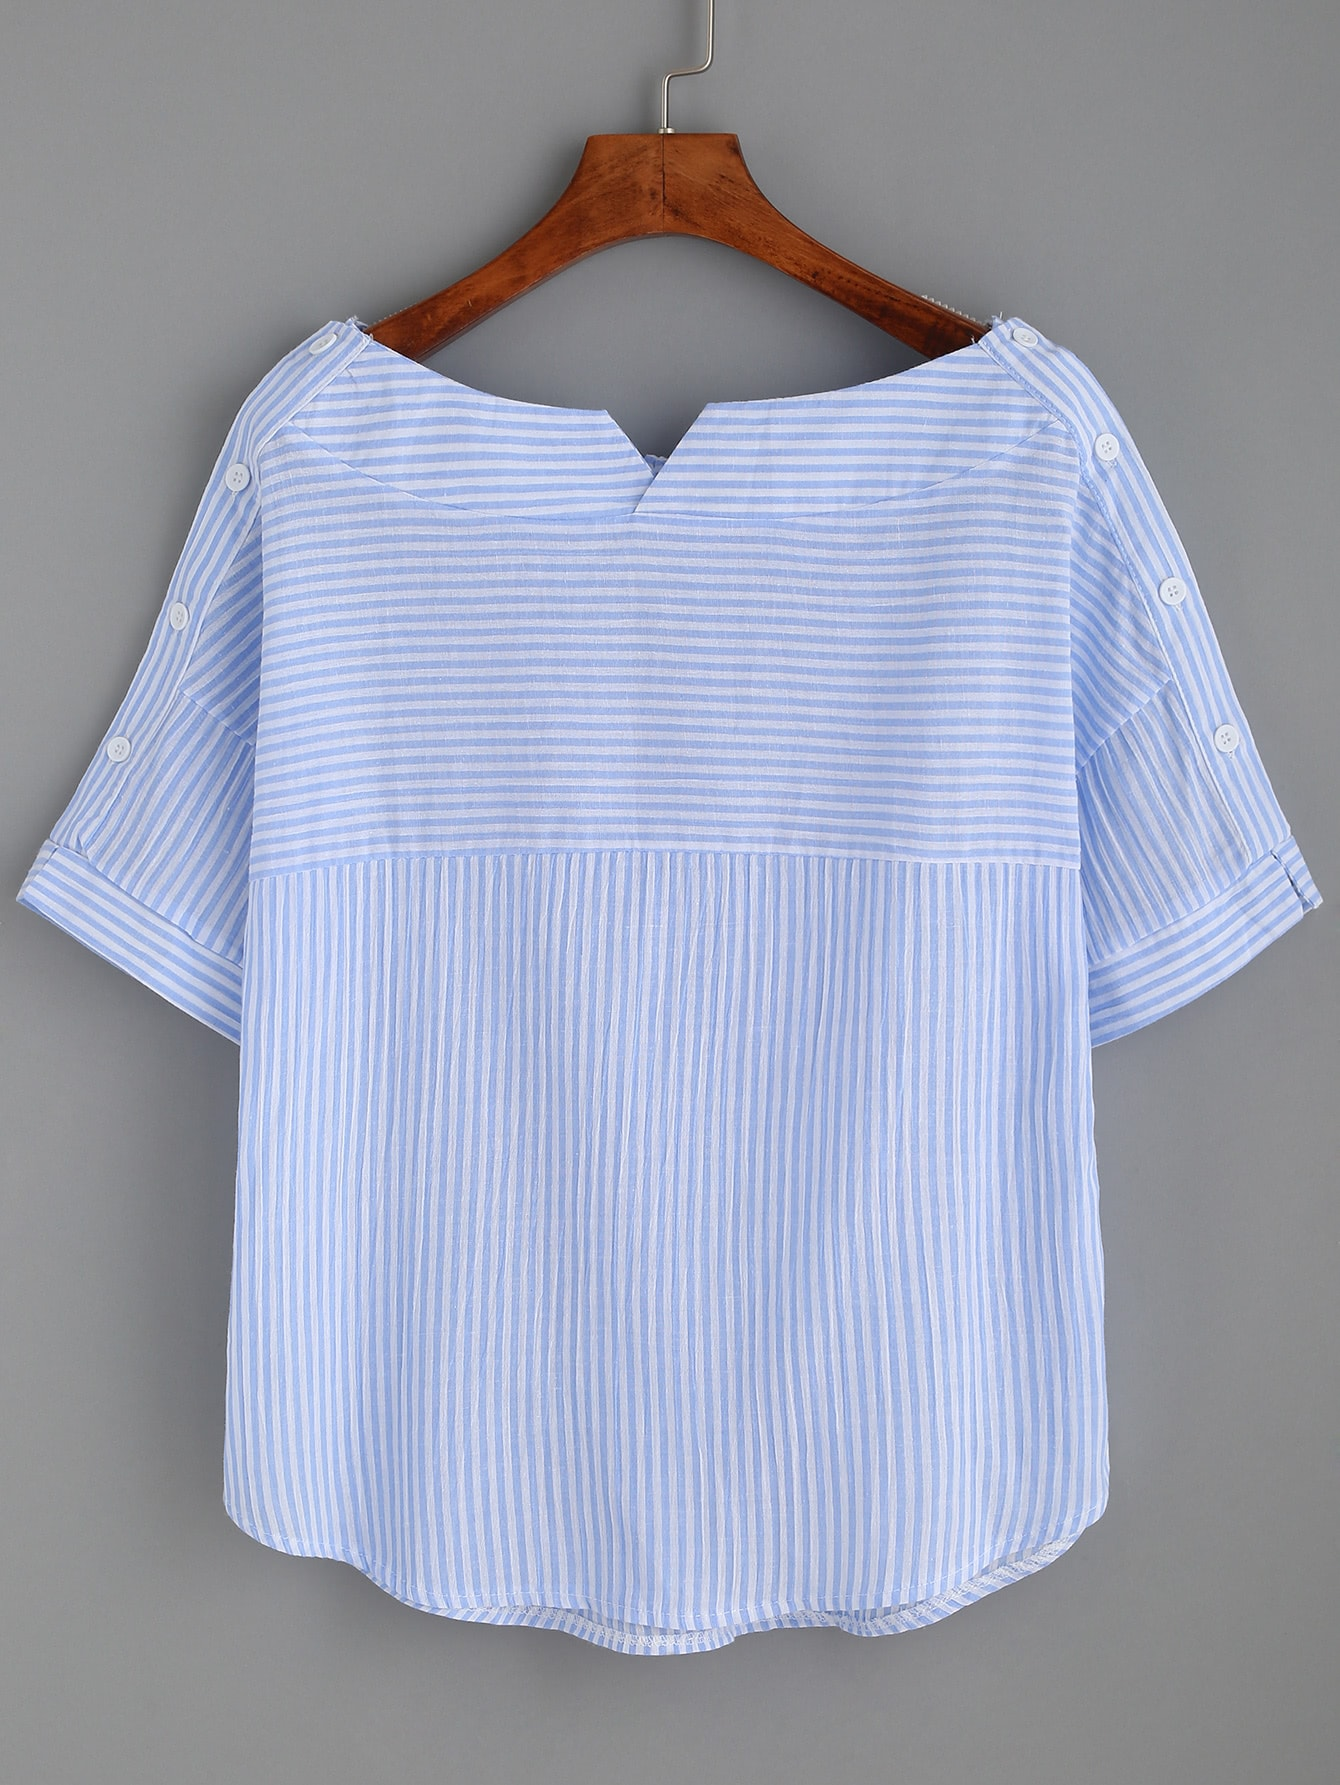 Striped Boat Neck Blouse With Buttons boat neckline striped blouse with buttons